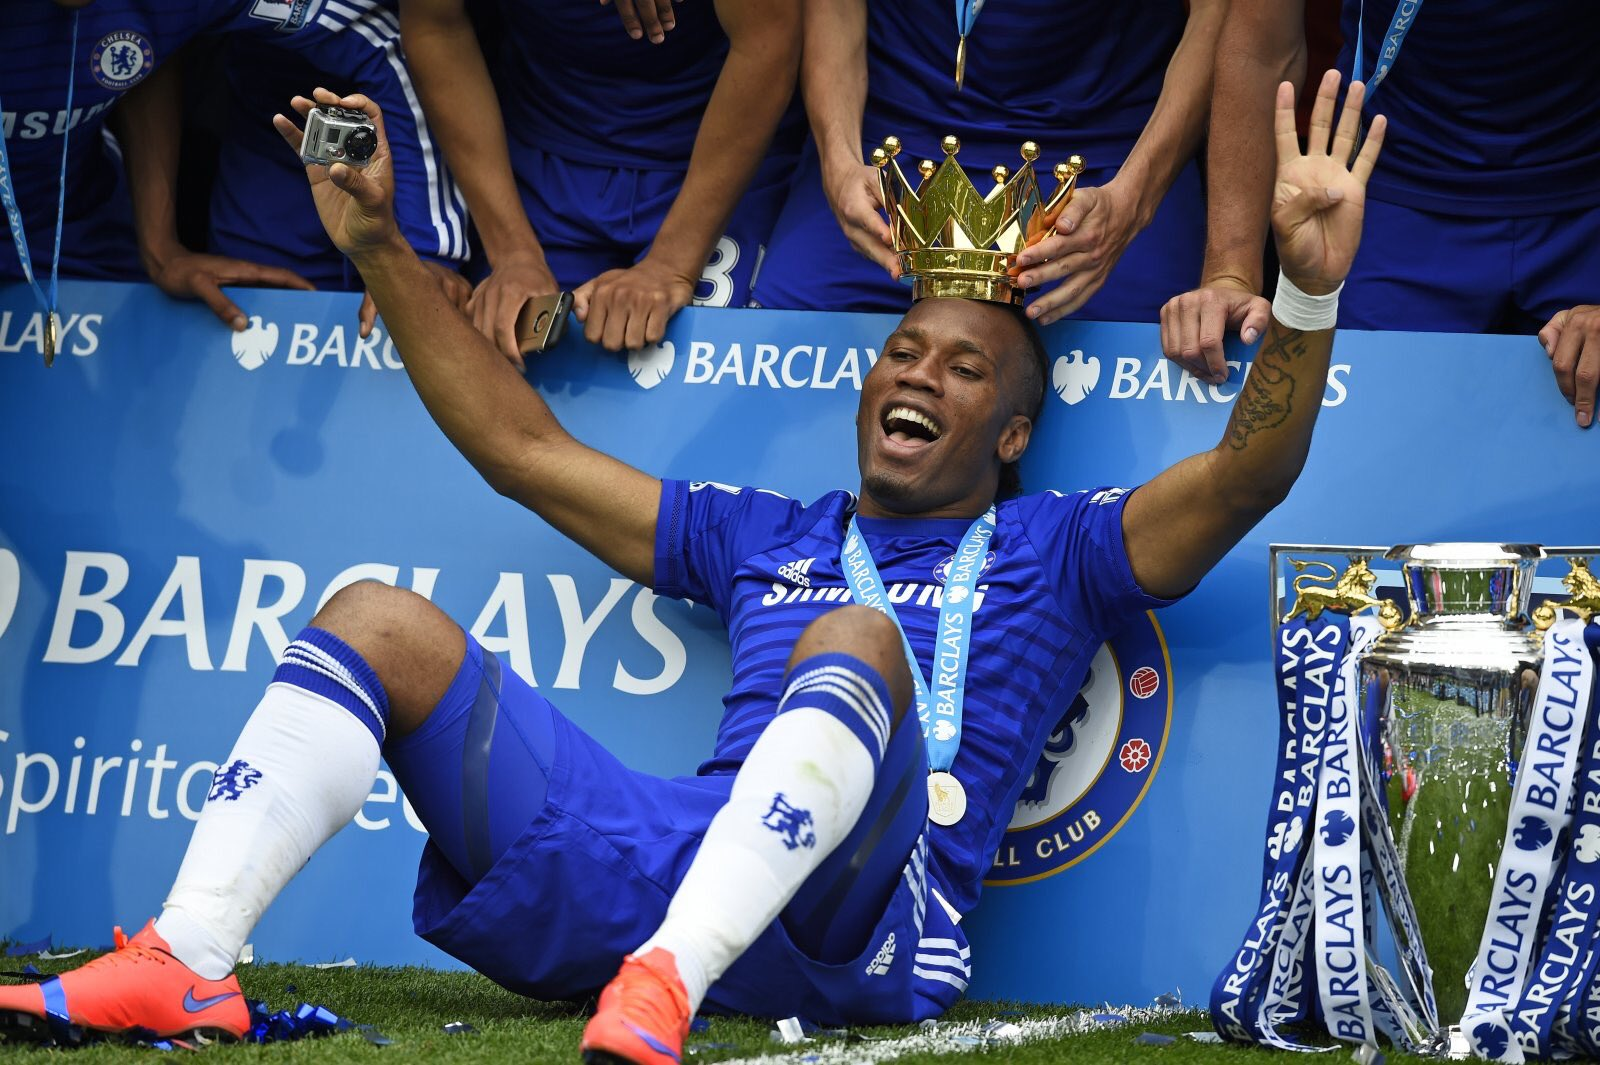 DIDIER DROGBA: WHAT A CAREER